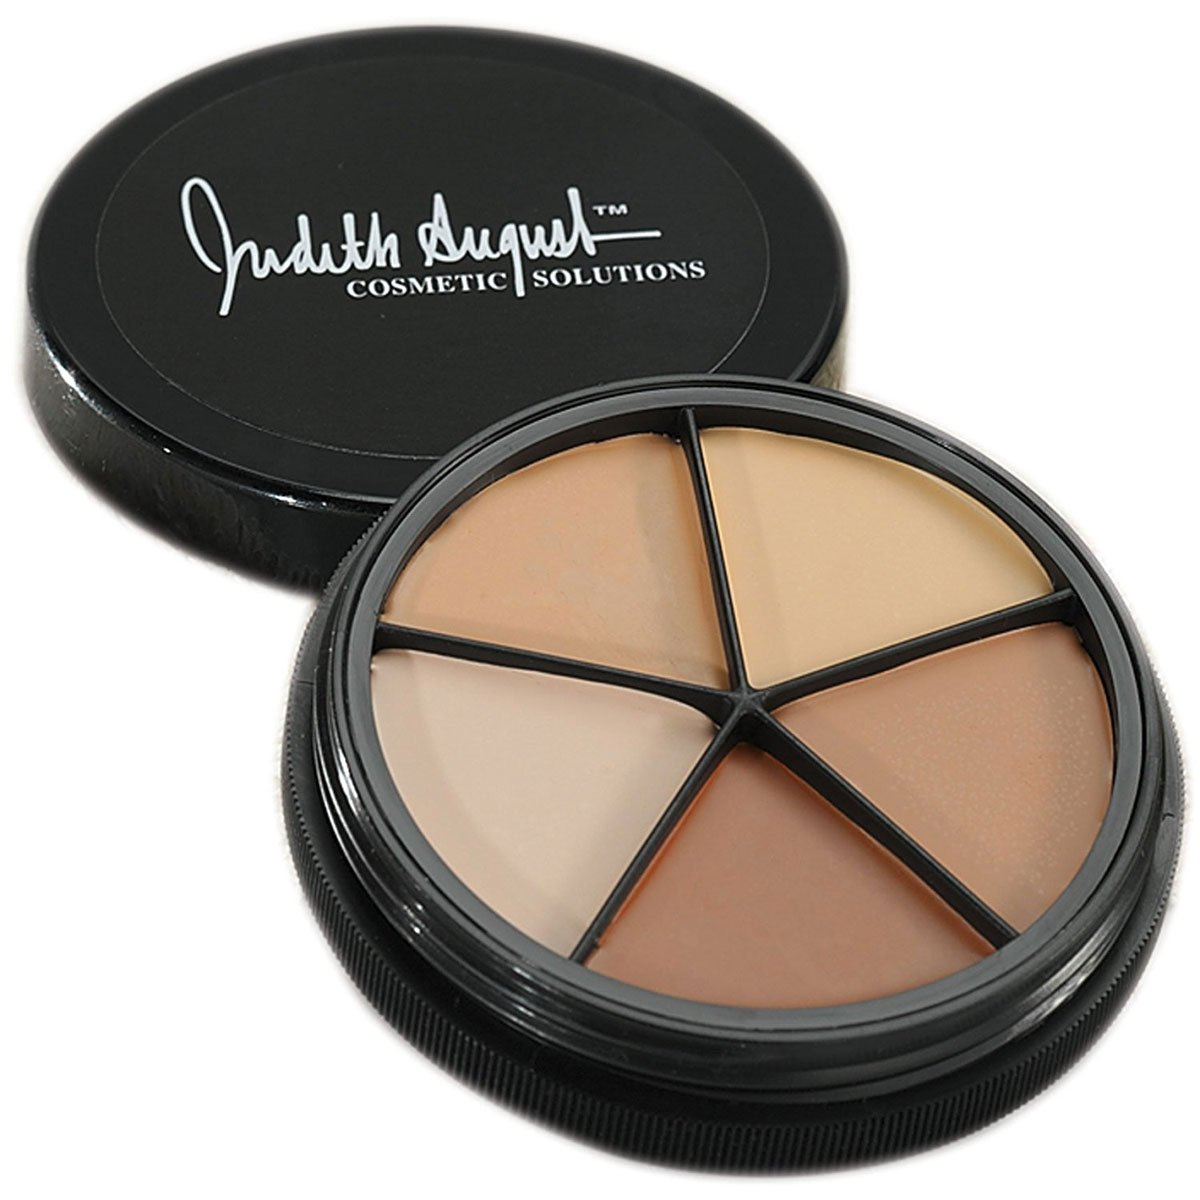 Judith Augusts Killer Cover Concealer